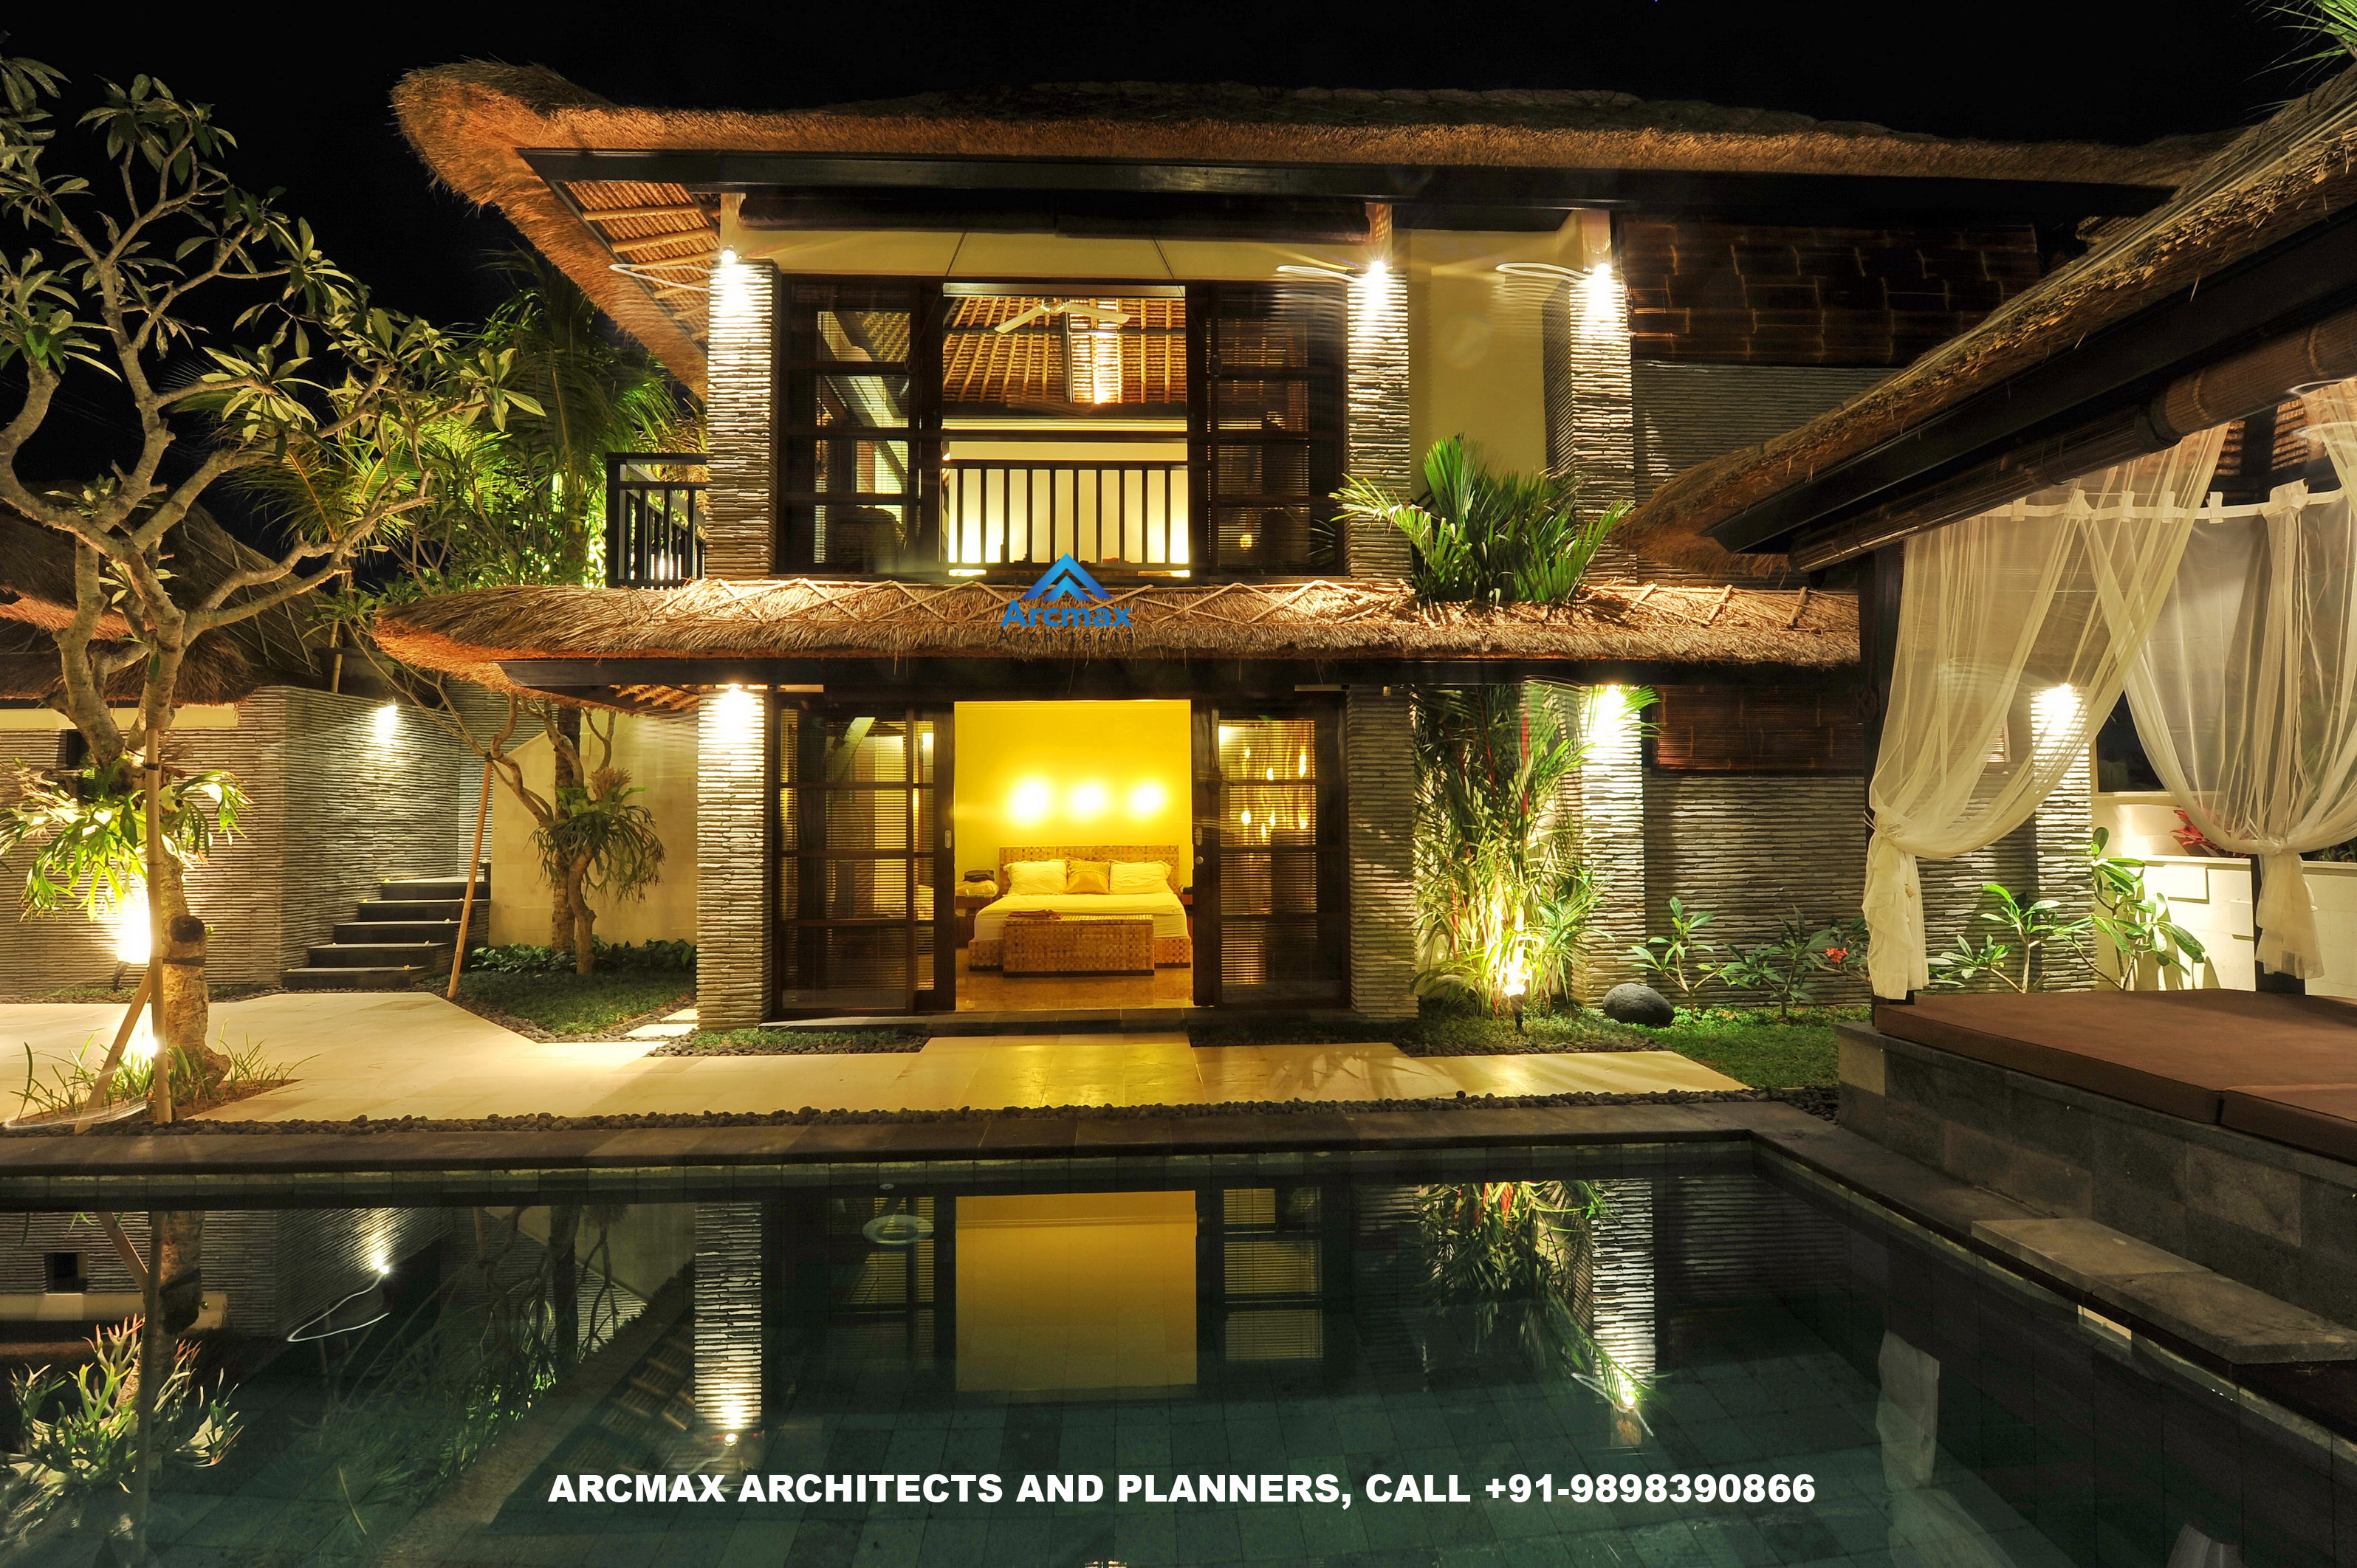 Best Architect For Weekend Home Design In India Arcmax